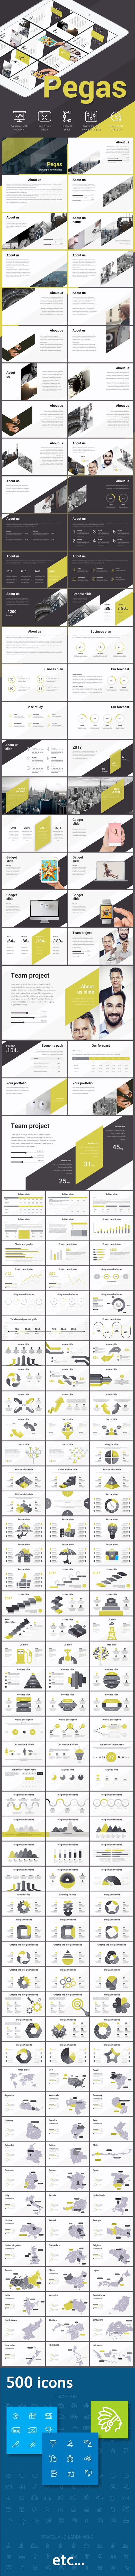 Pegas Powerpoint template - Business PowerPoint Templates